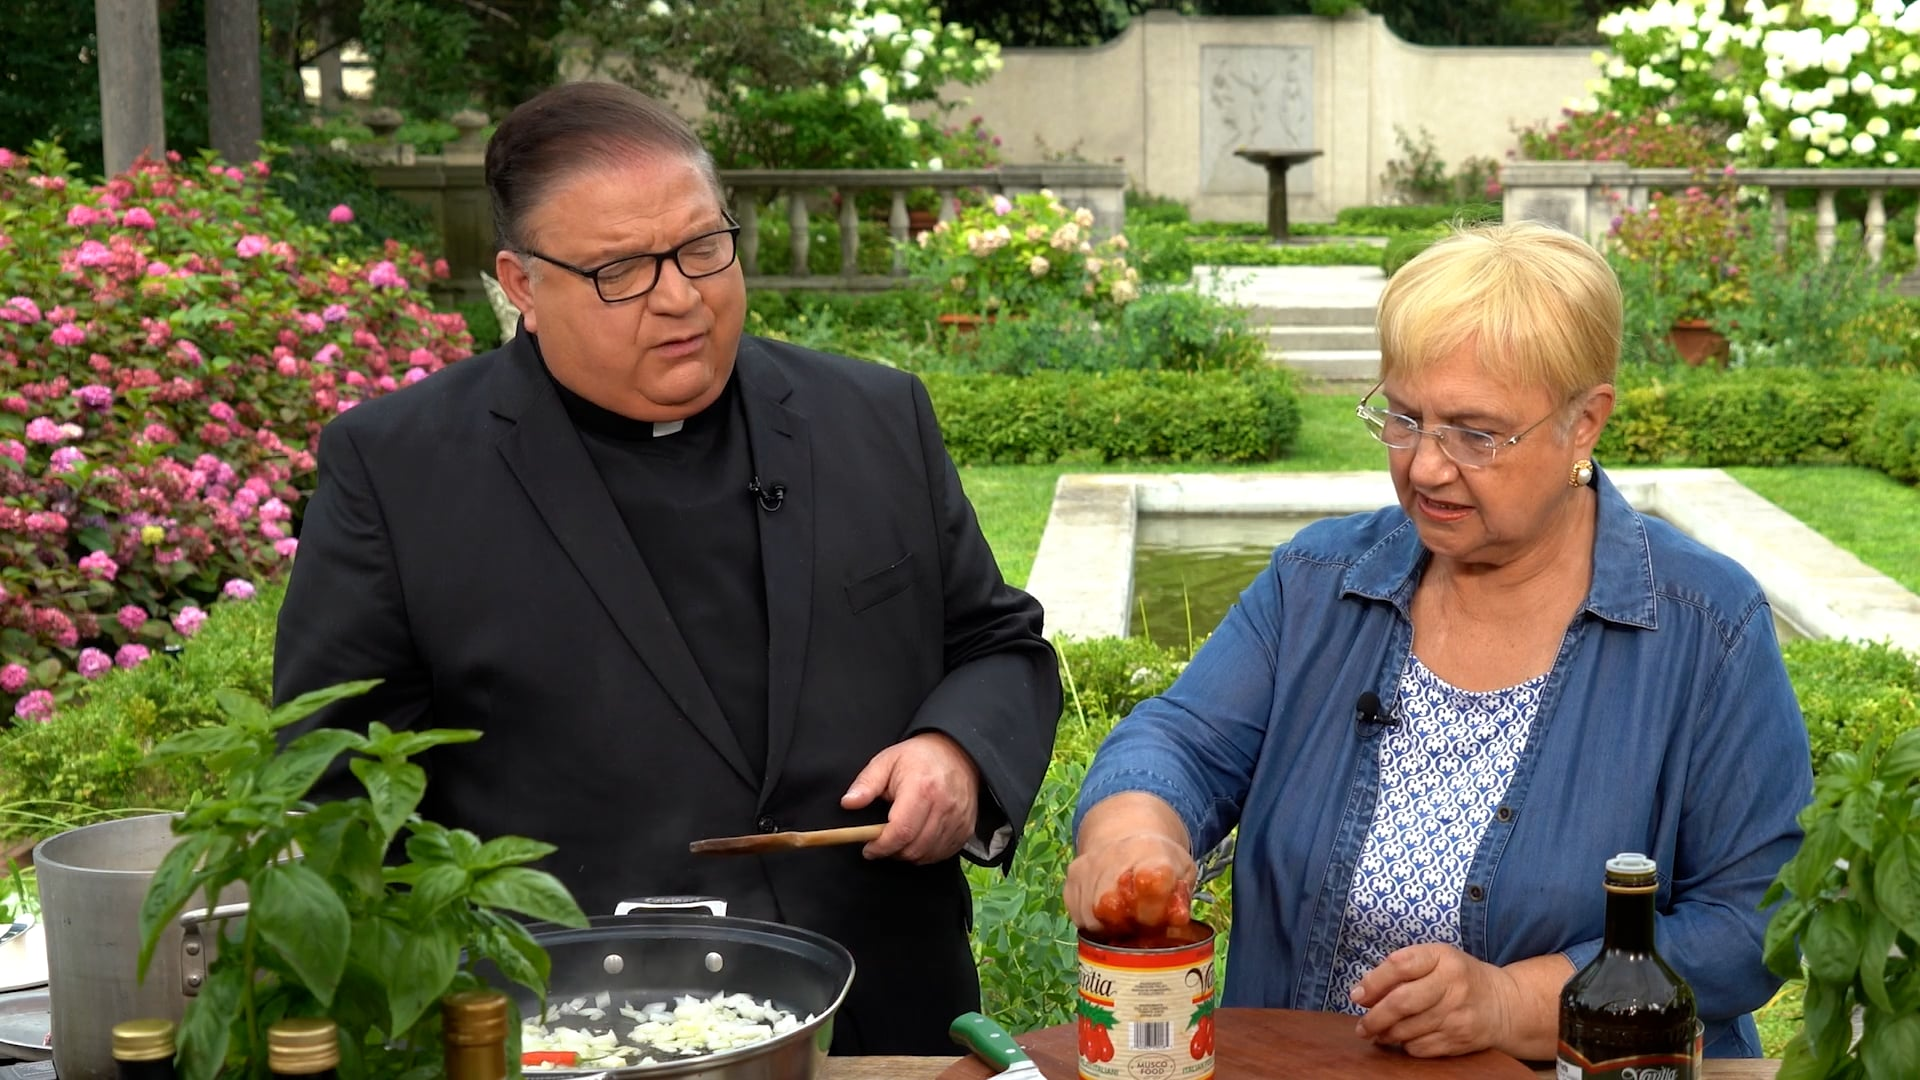 Real Food - Cooking with Lidia Bastianich